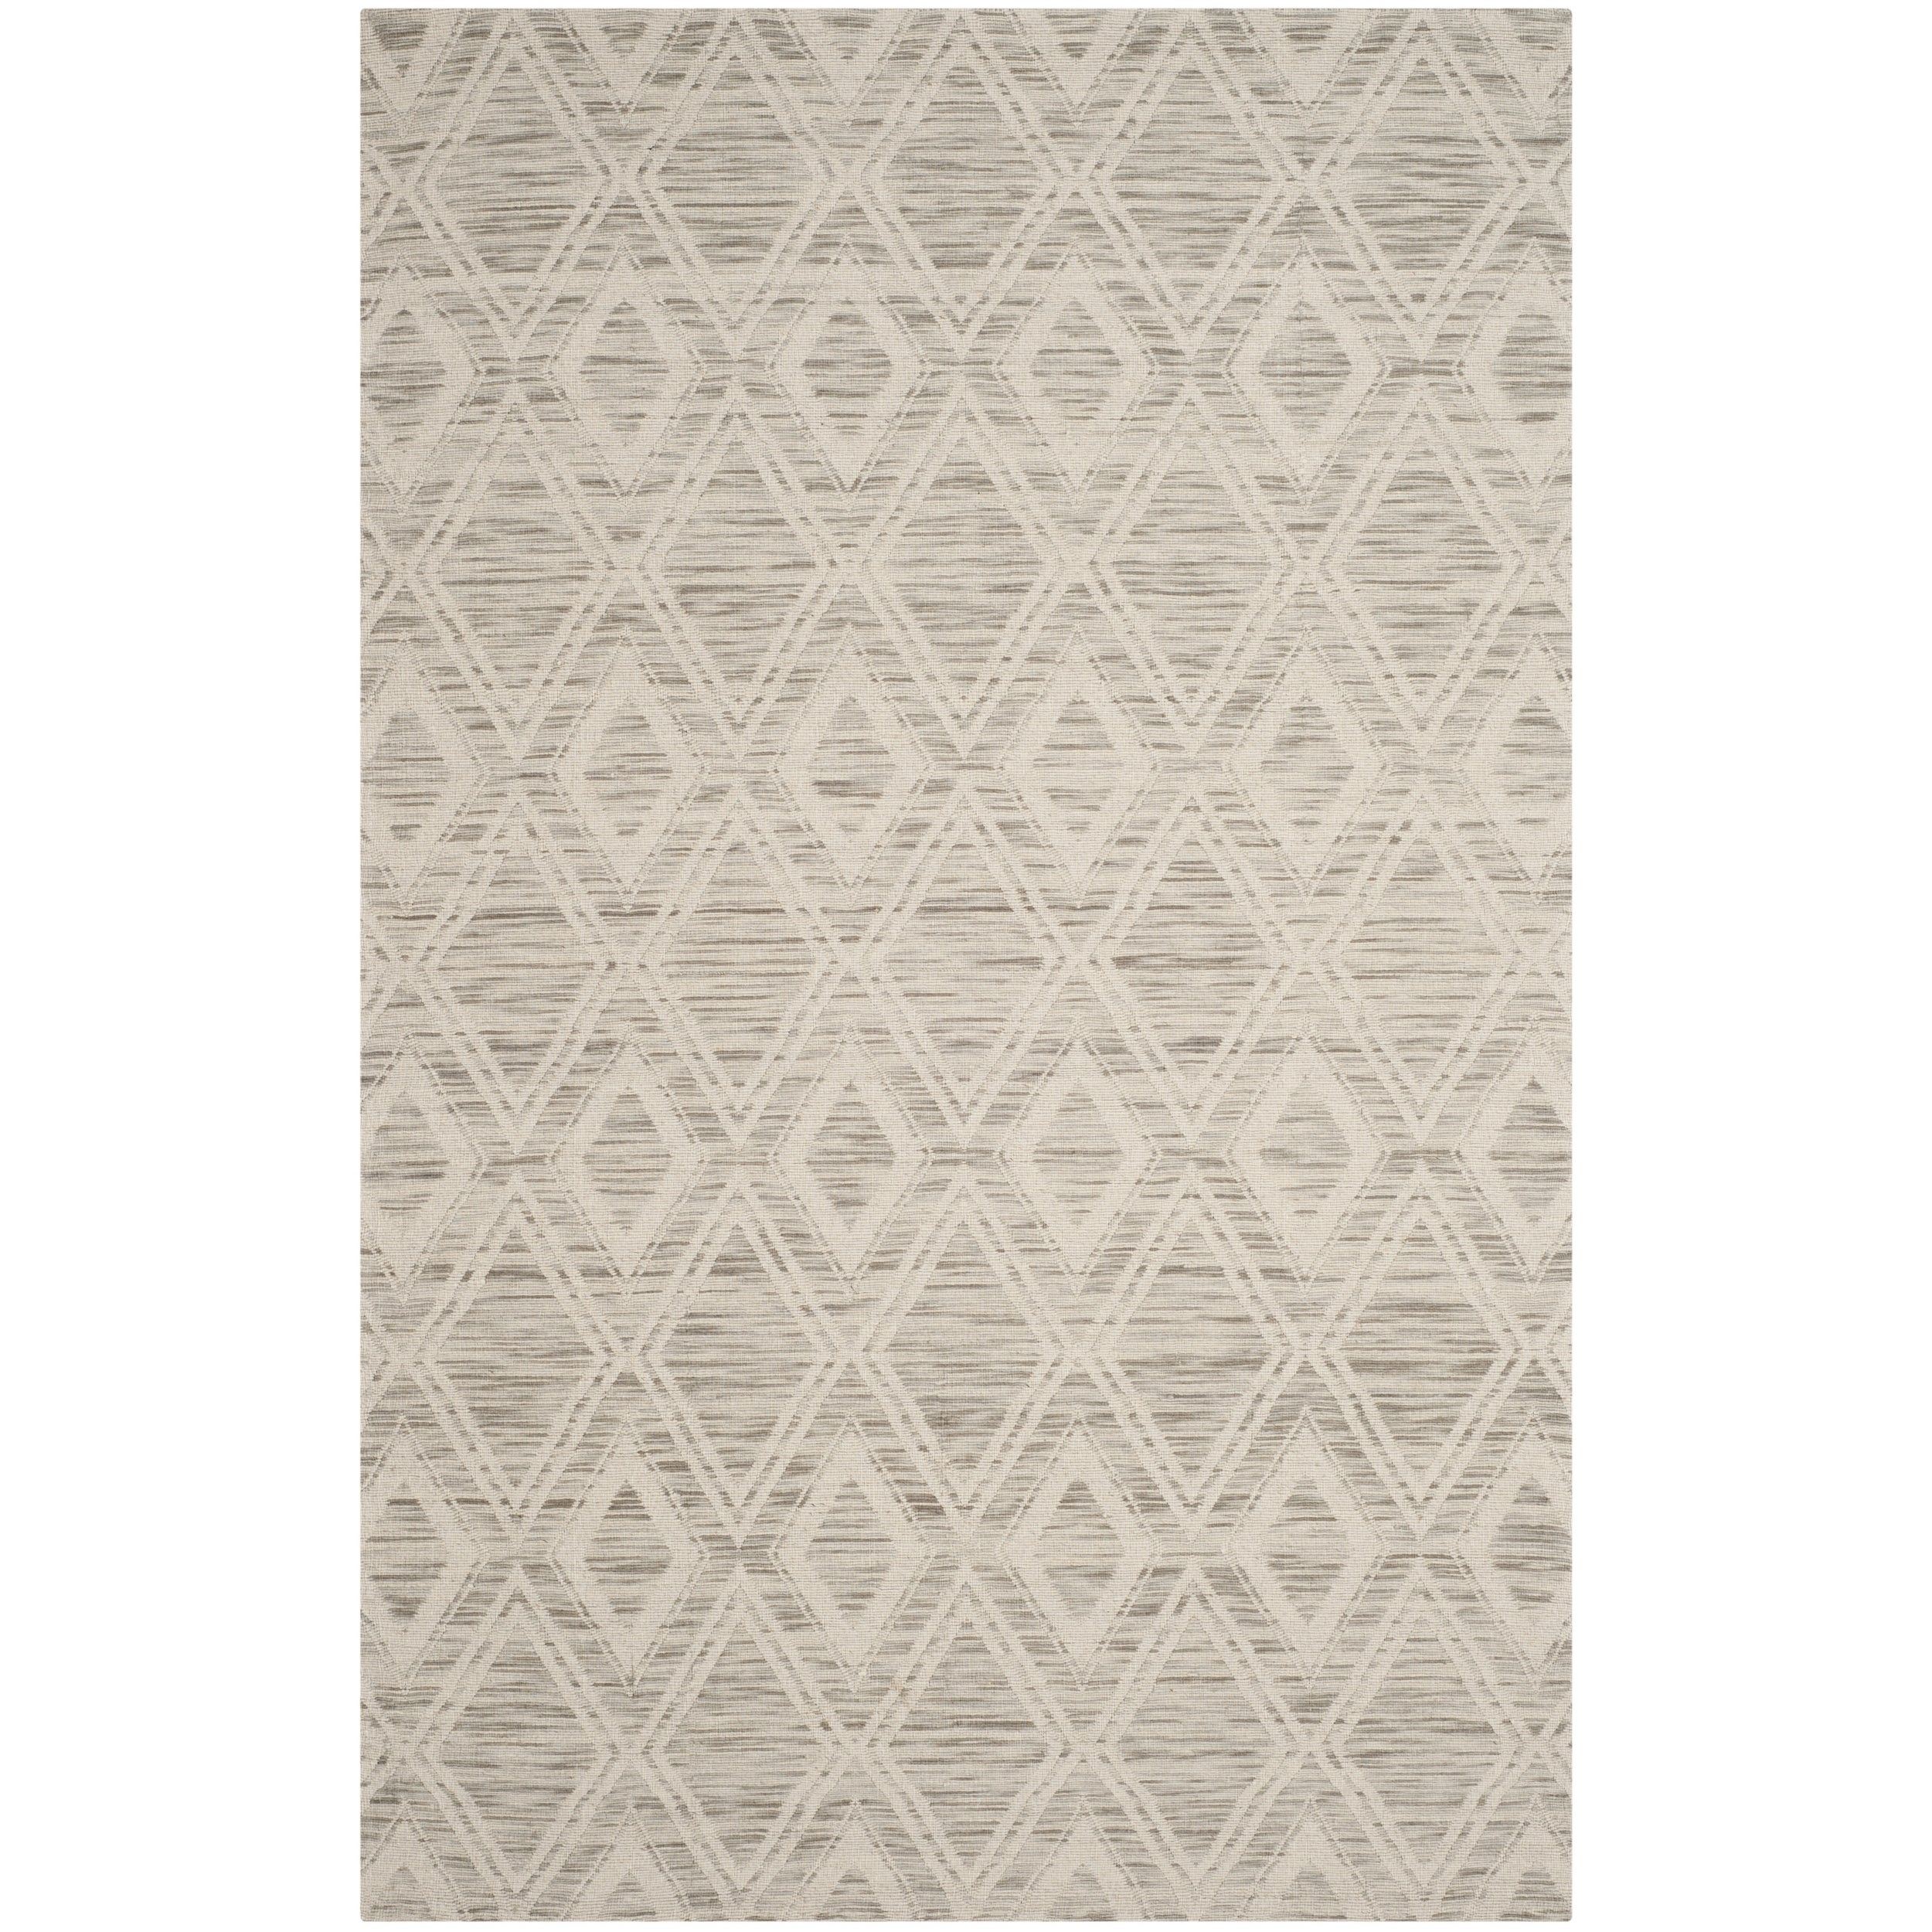 light wool home ivory today safavieh brown shipping product garden x handmade free modern overstock cambridge rug